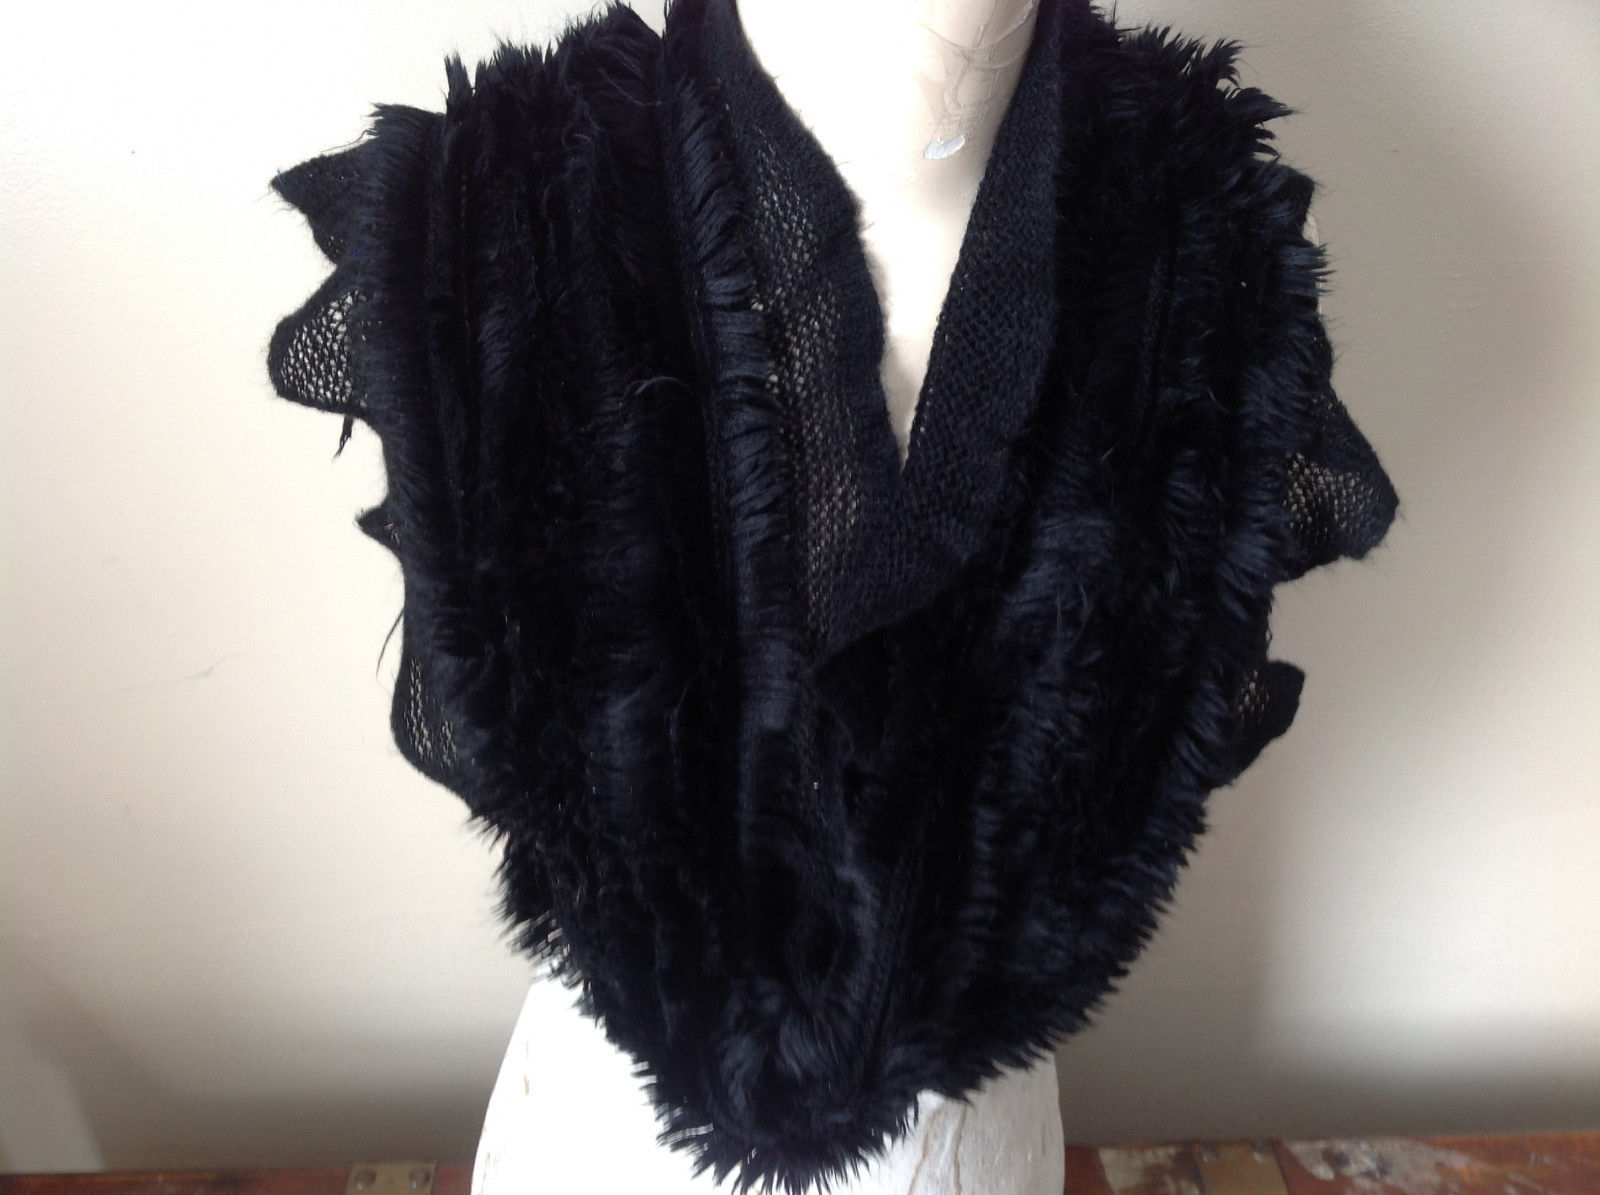 Frilly Furry faux fur Black Infinity Scarf See Measurements Below